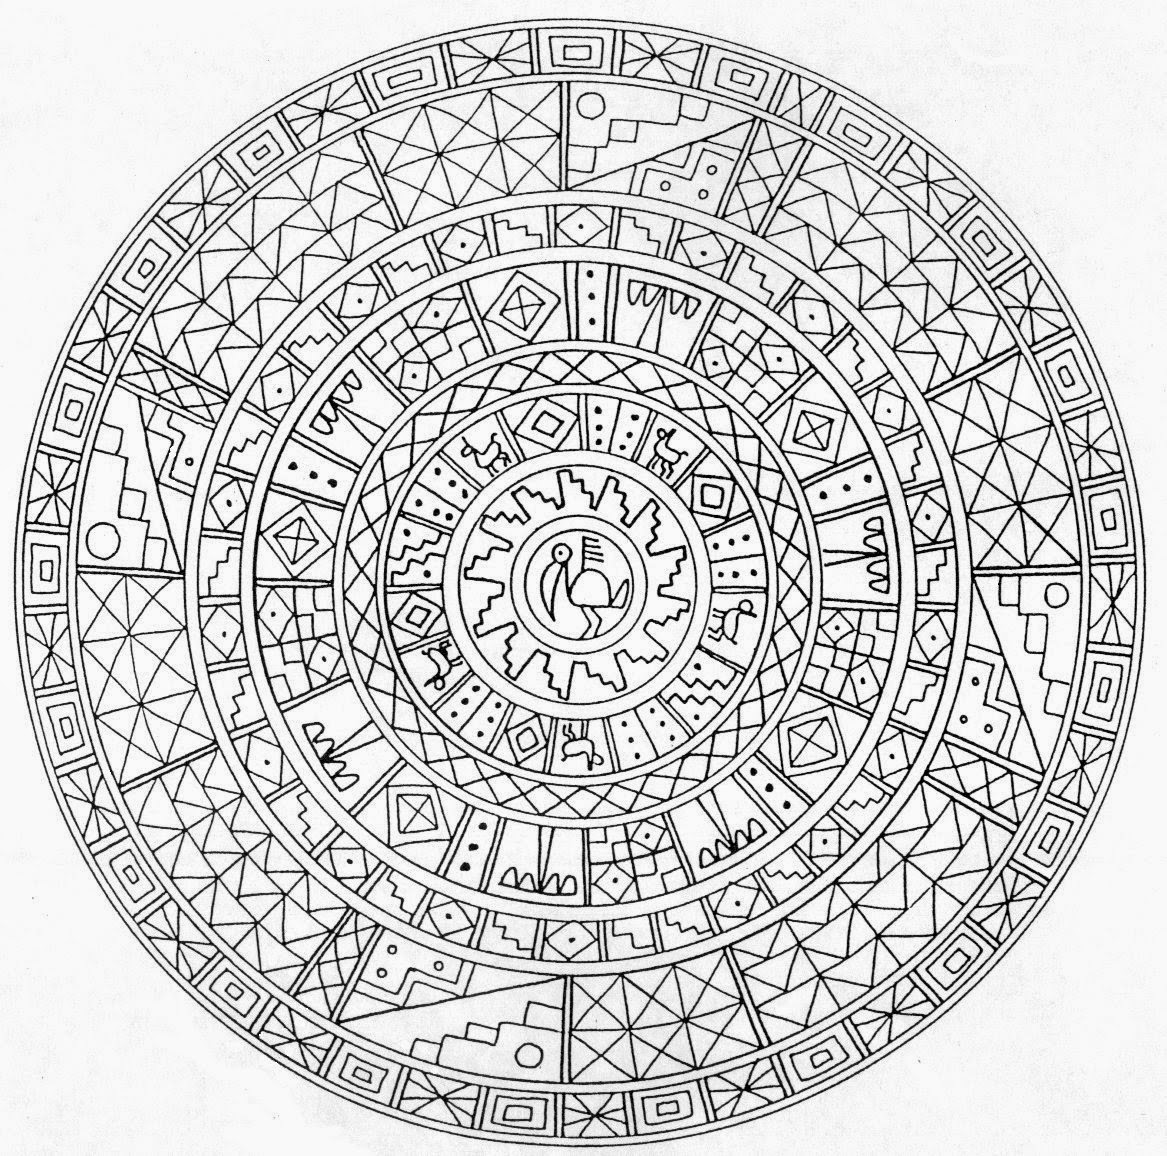 free printable mandalas for adults free printable mandala coloring pages for adults printable for adults mandalas free